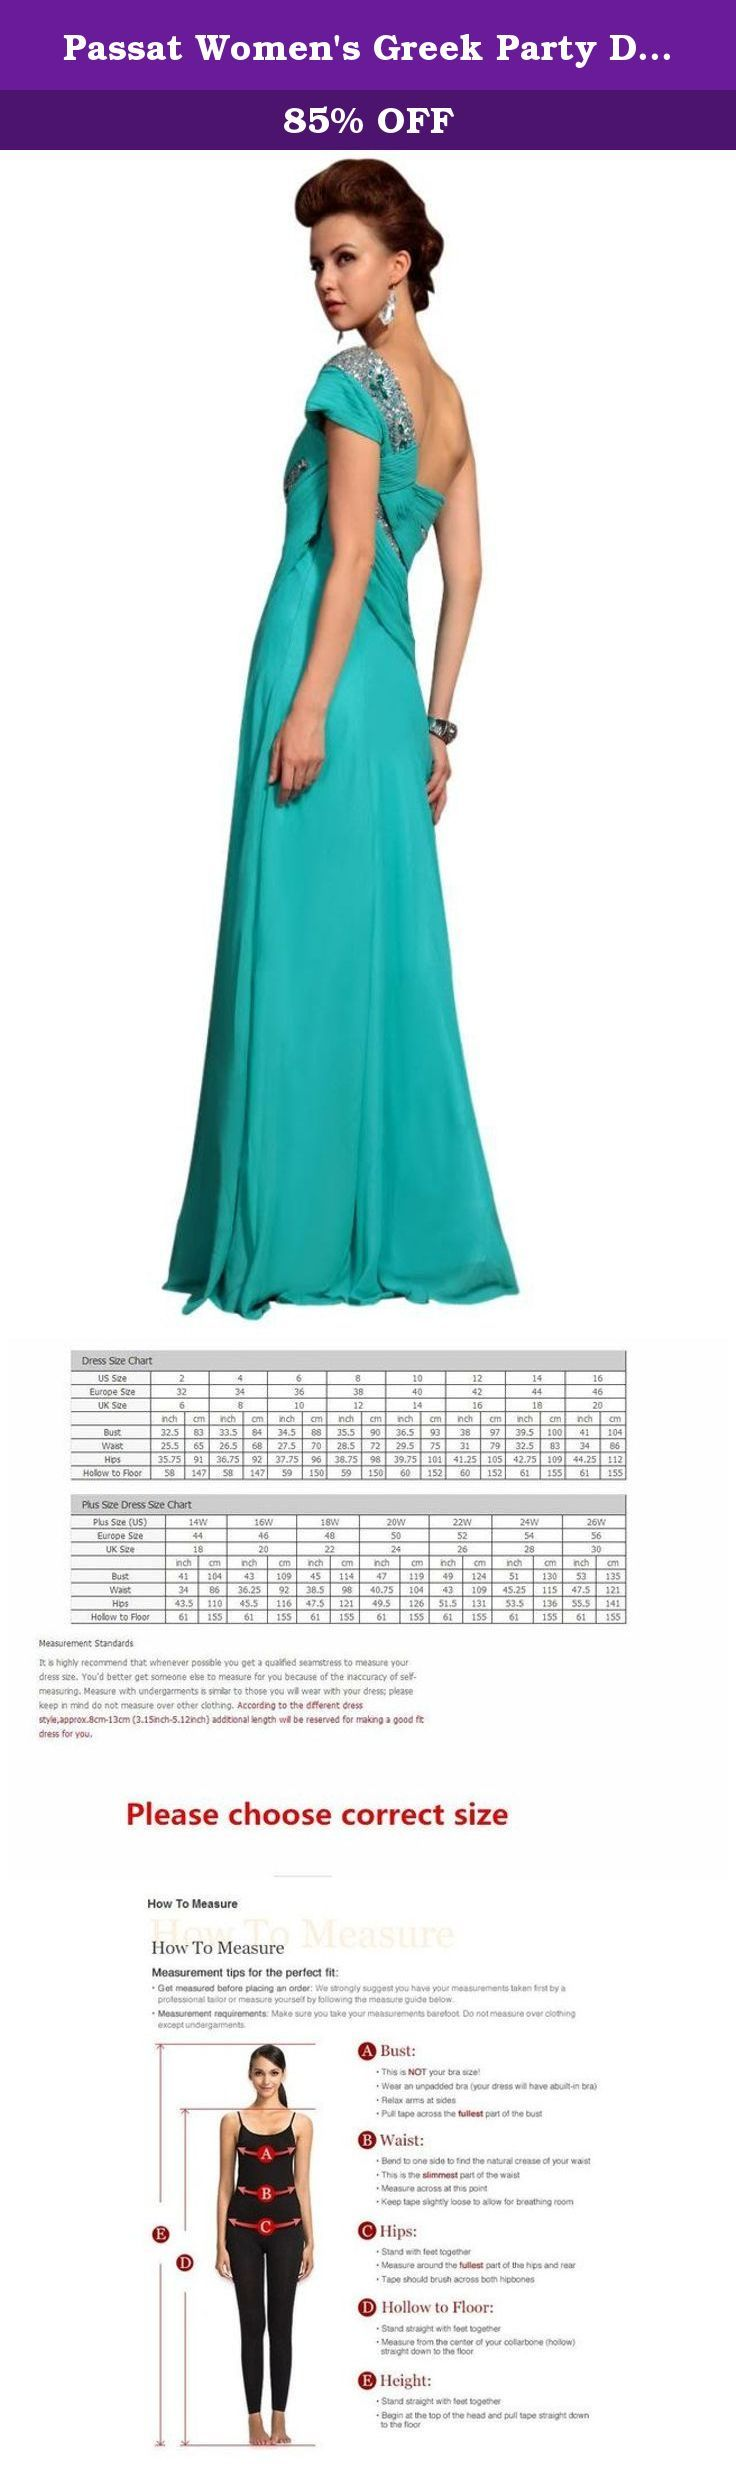 Passat Women's Greek Party Decorations Girls Bridesmaid Dress Size US28 Color Green. About Us Passat Clothes Group CO.,LTD was launched in 1998 with a goal to provide high fashion and designer names to local women and teens. Since then it has taken a sleepy and culturally diverse Queens neighborhood by storm, dressing women around the world in high quality designer gowns for their Proms, Weddings, Homecoming parties, Sweet Sixteen galas, Bat Mitzvahs, Holiday parties and other important...